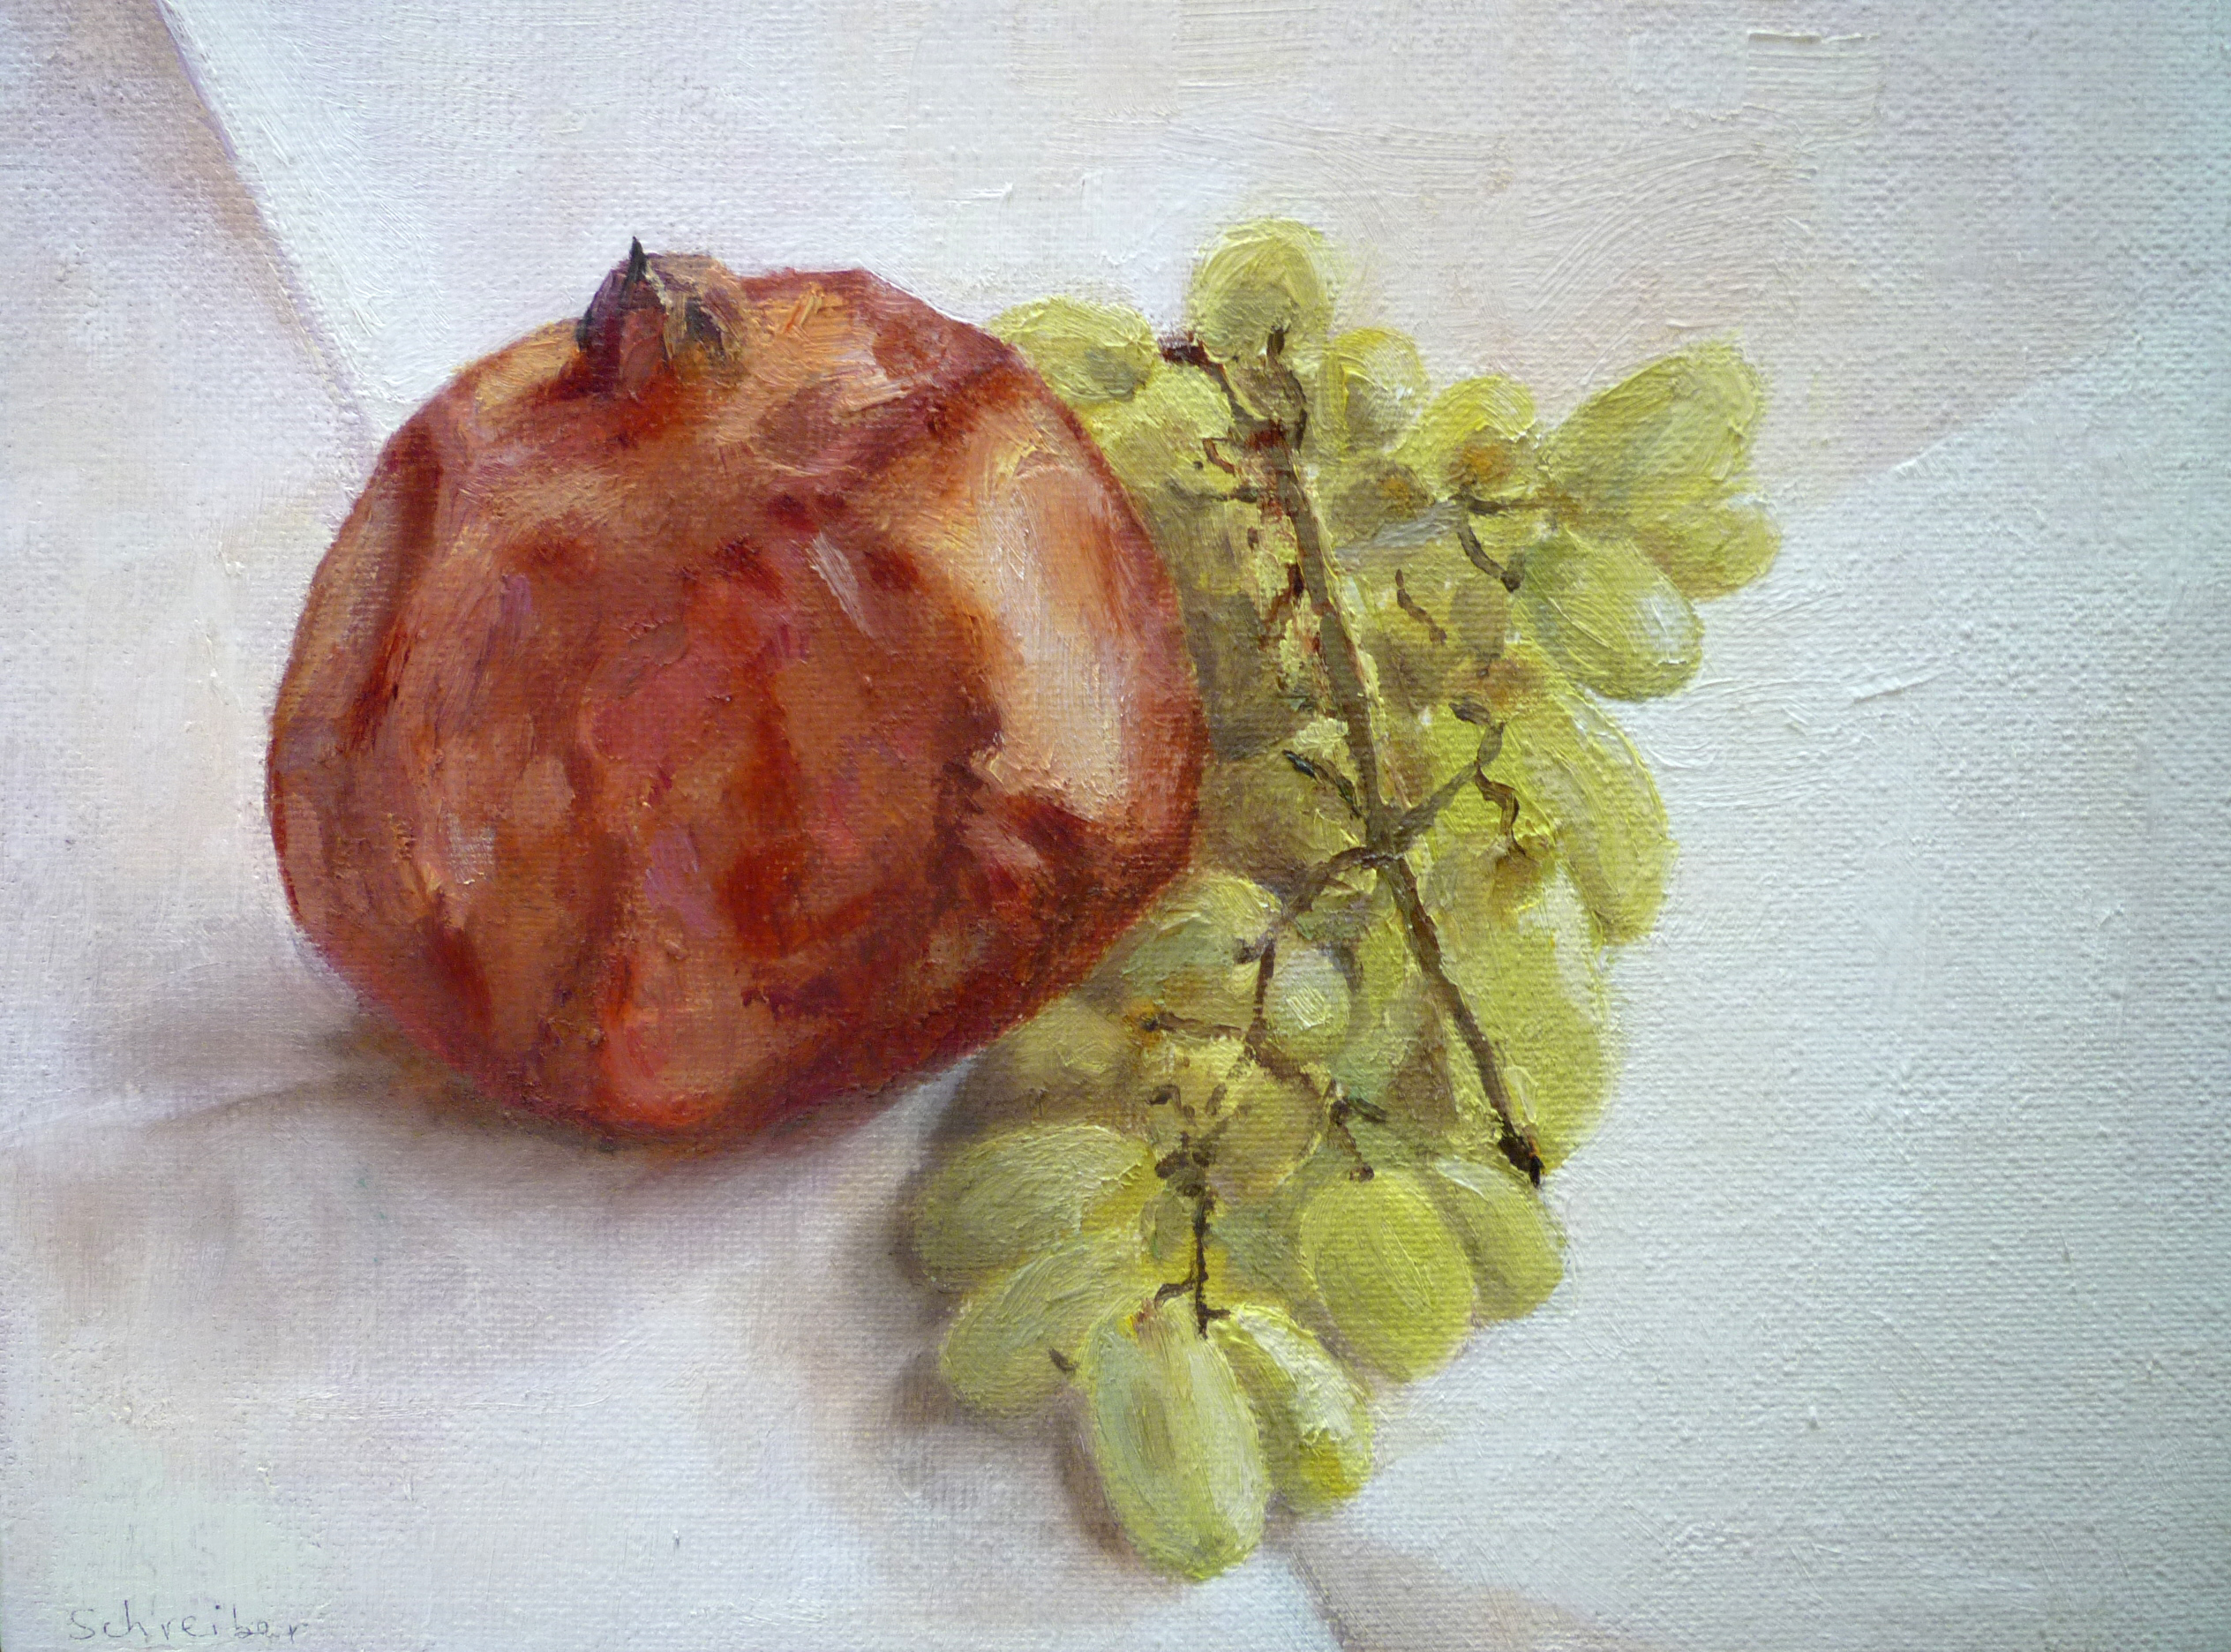 grapes-and-pomegranate-20x25cm